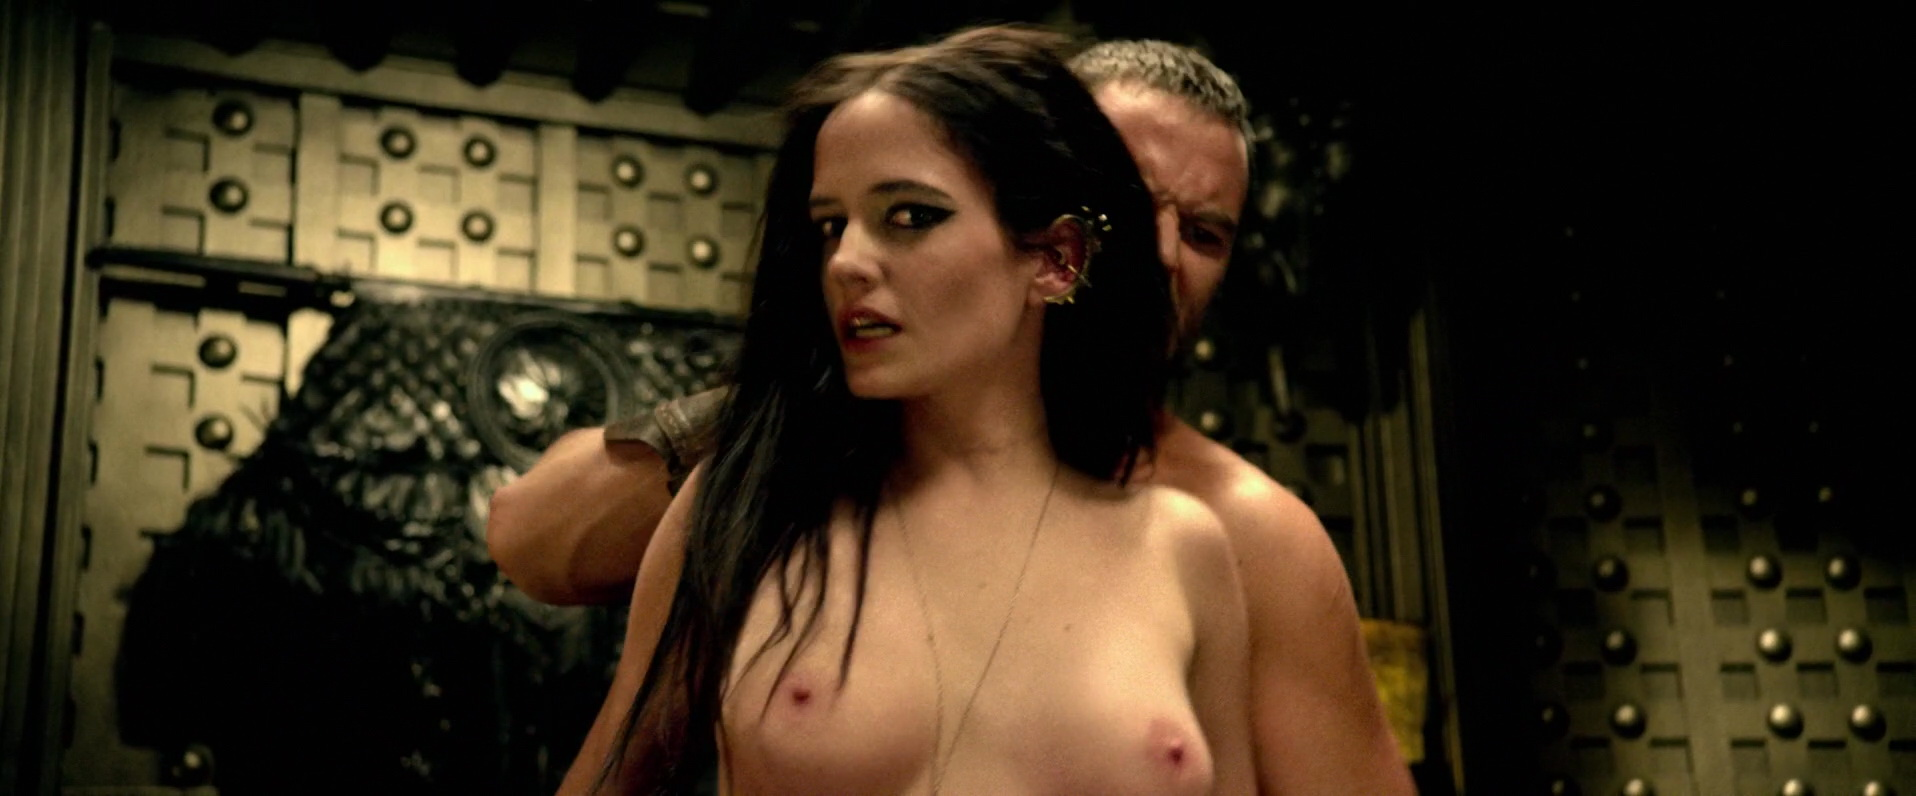 Eva Green – 300: Rise of an Empire (2014) HD 1080p